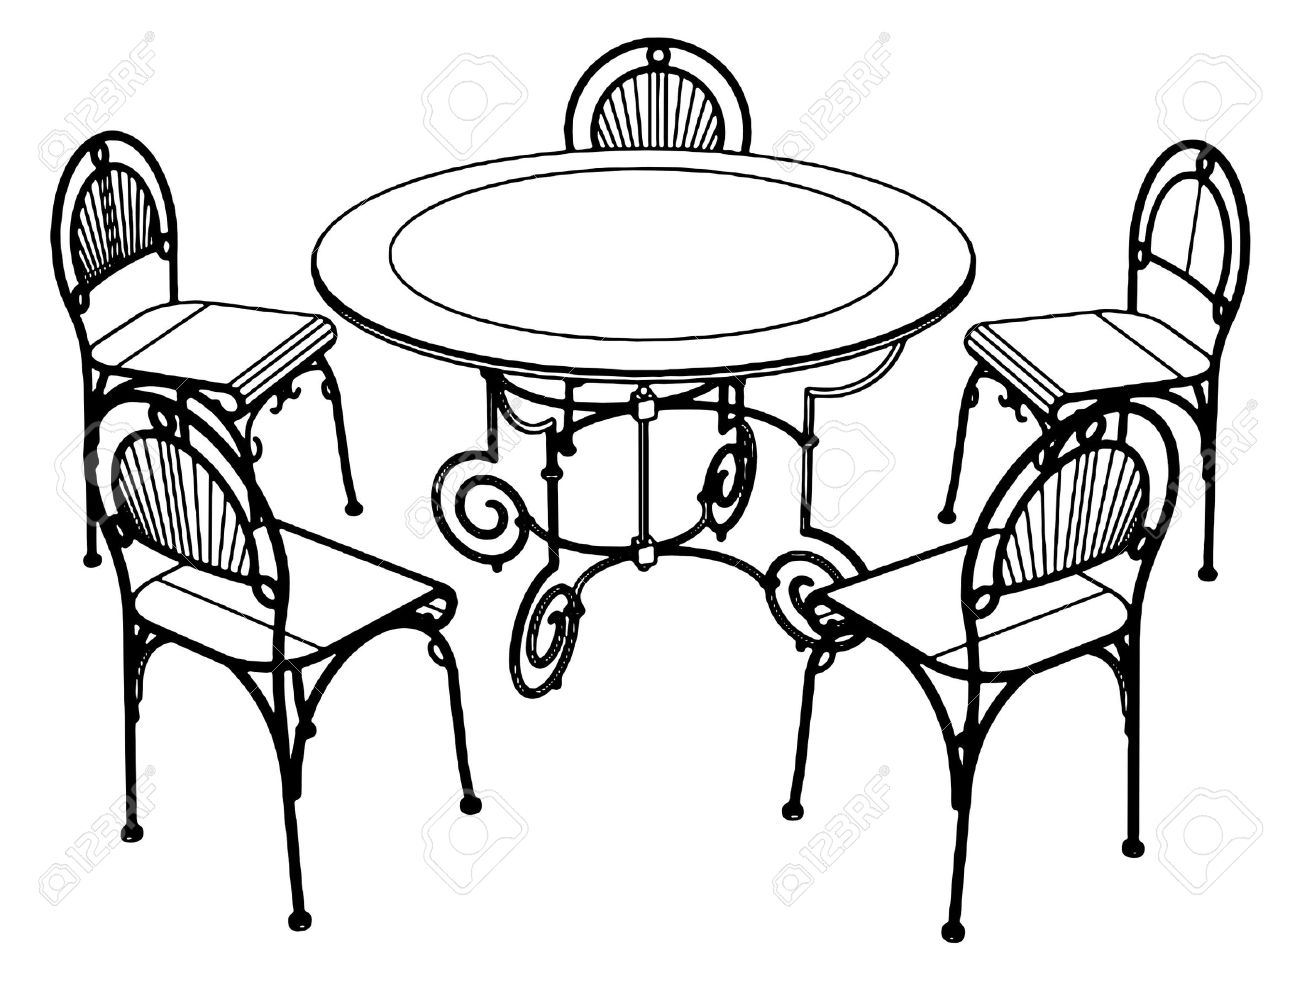 Wedding table clipart picture freeuse download Reception Clipart | Free download best Reception Clipart on ... picture freeuse download